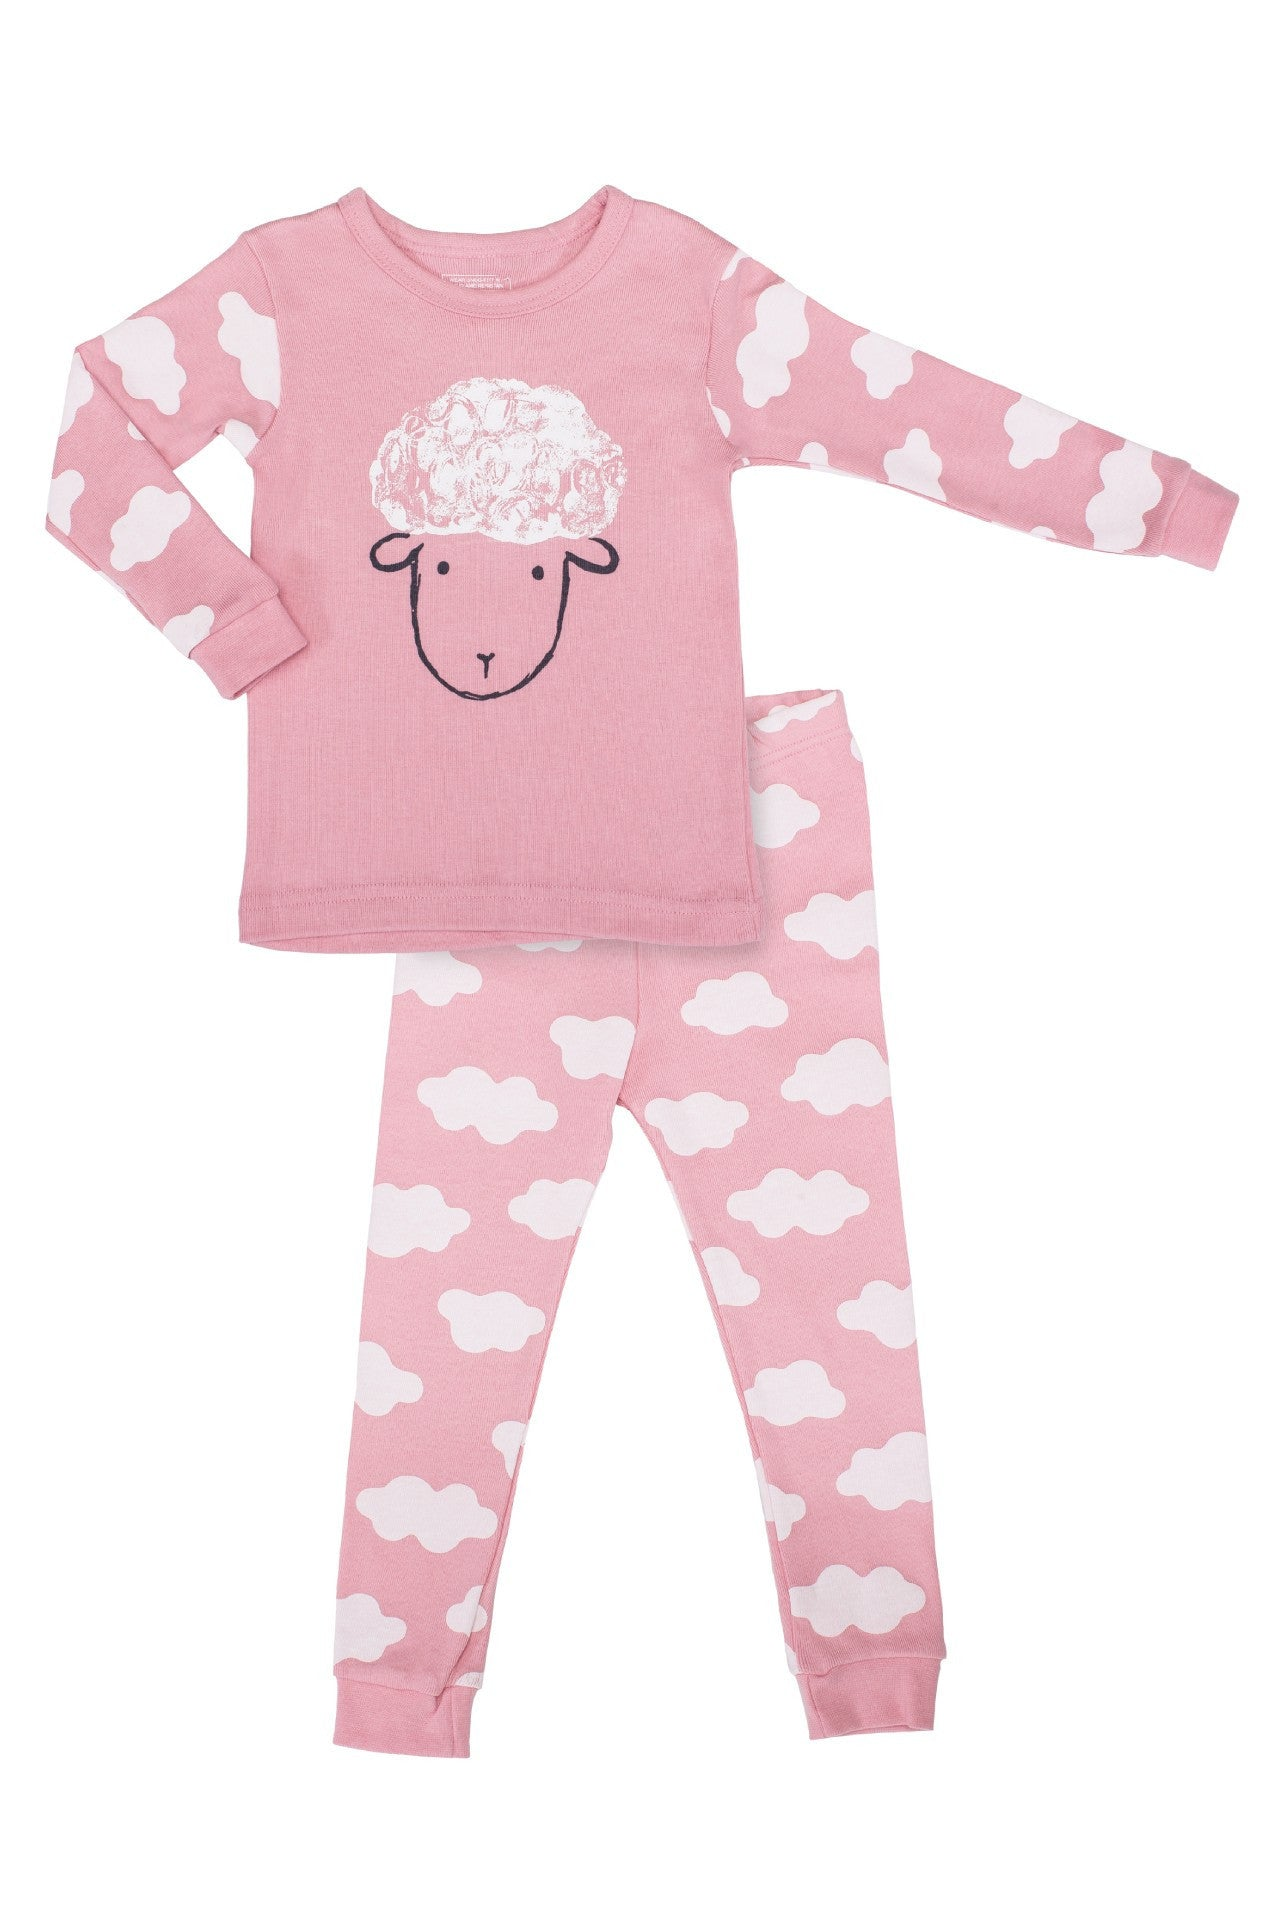 20s Cotton Count - Medium Warmth Pajamas - Counting Sheep (Pink)